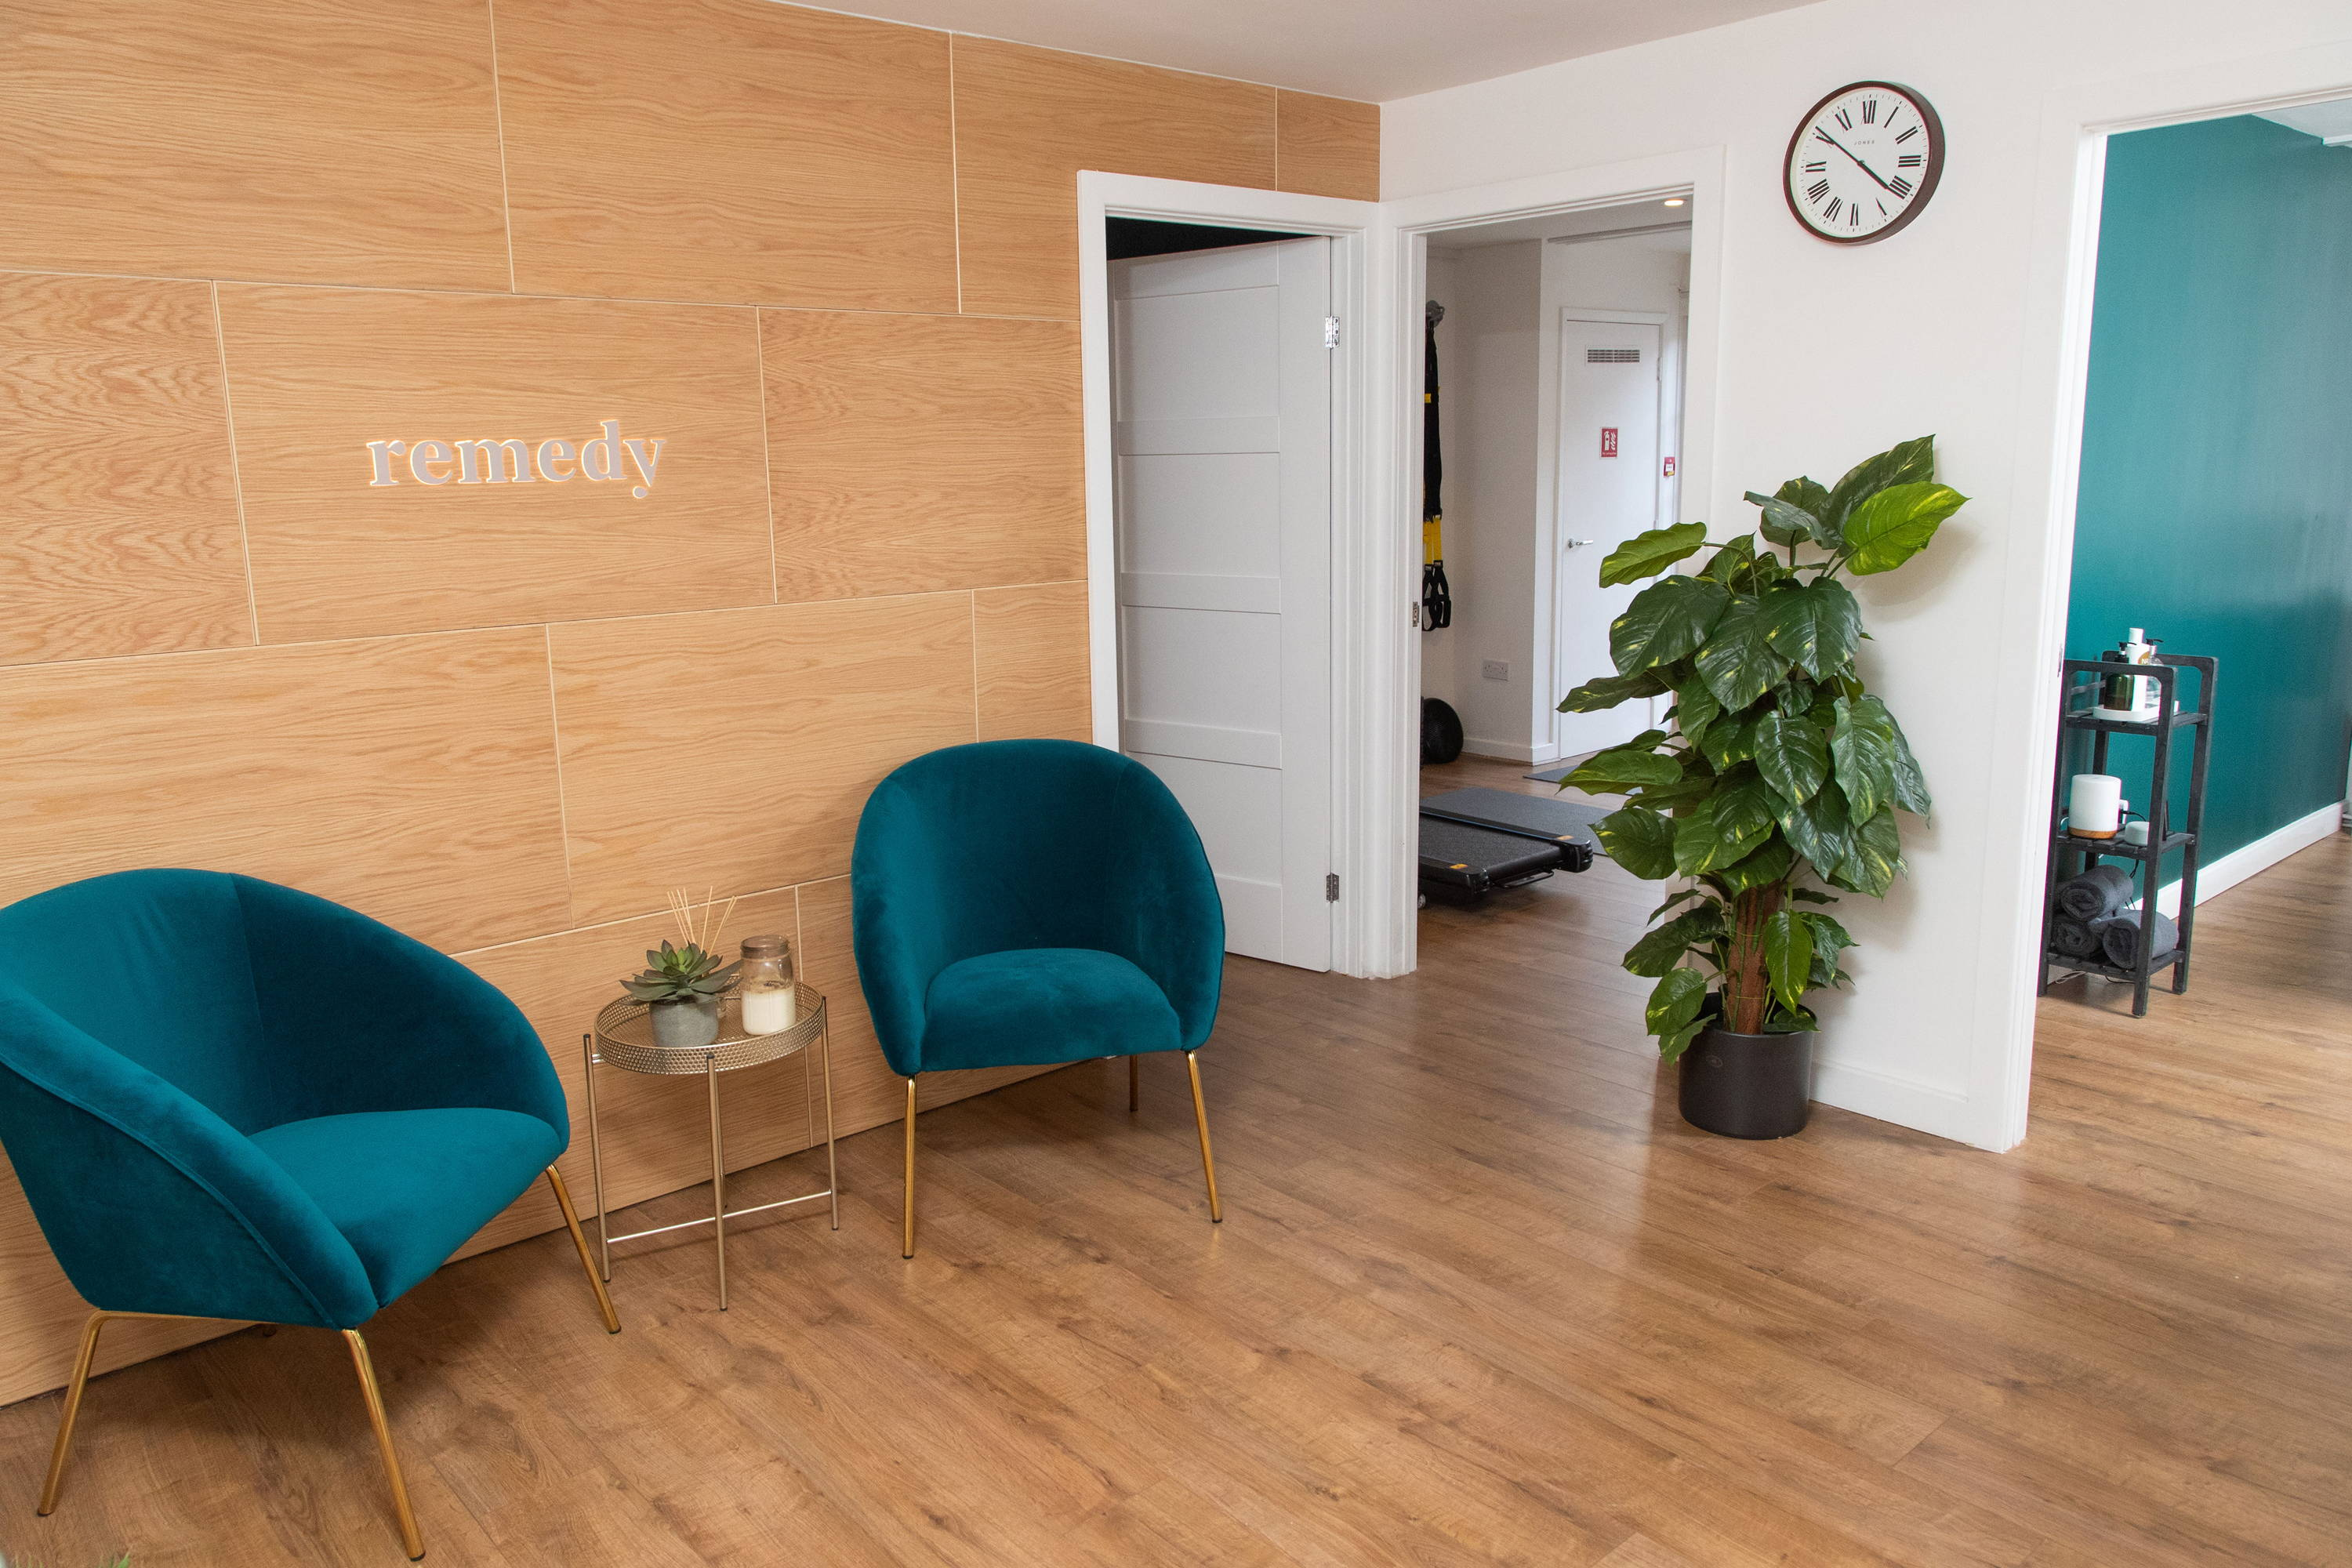 Patient waiting area at Remedy Burton Physiotherapy Clinic